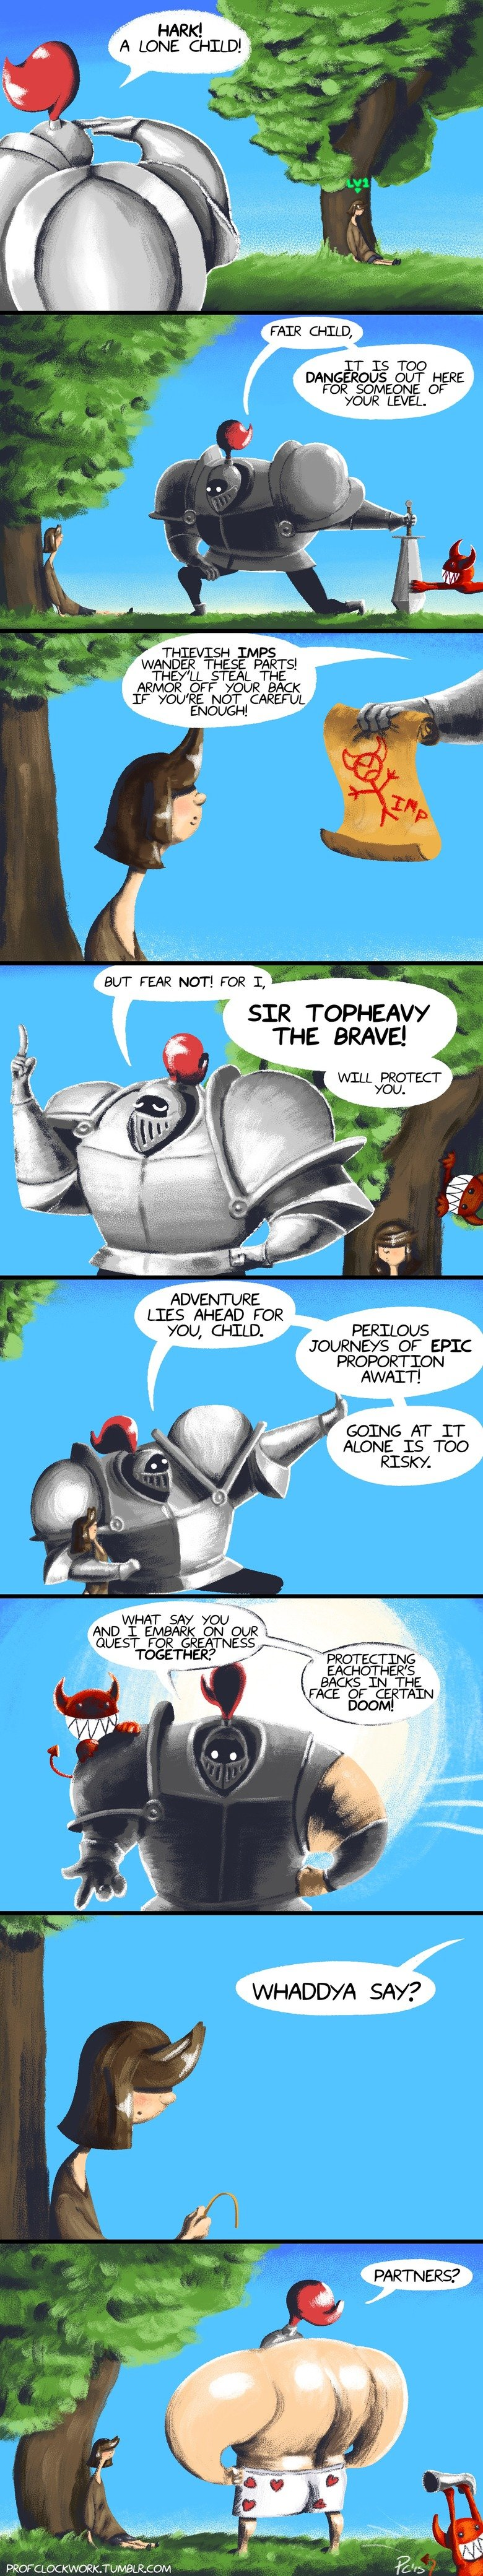 Scrap & Topheavy. Heroic Encounters Scrap & Topheavy is a new webcomic I have been working on for the past few weeks. See more of my over at: profclockwork.